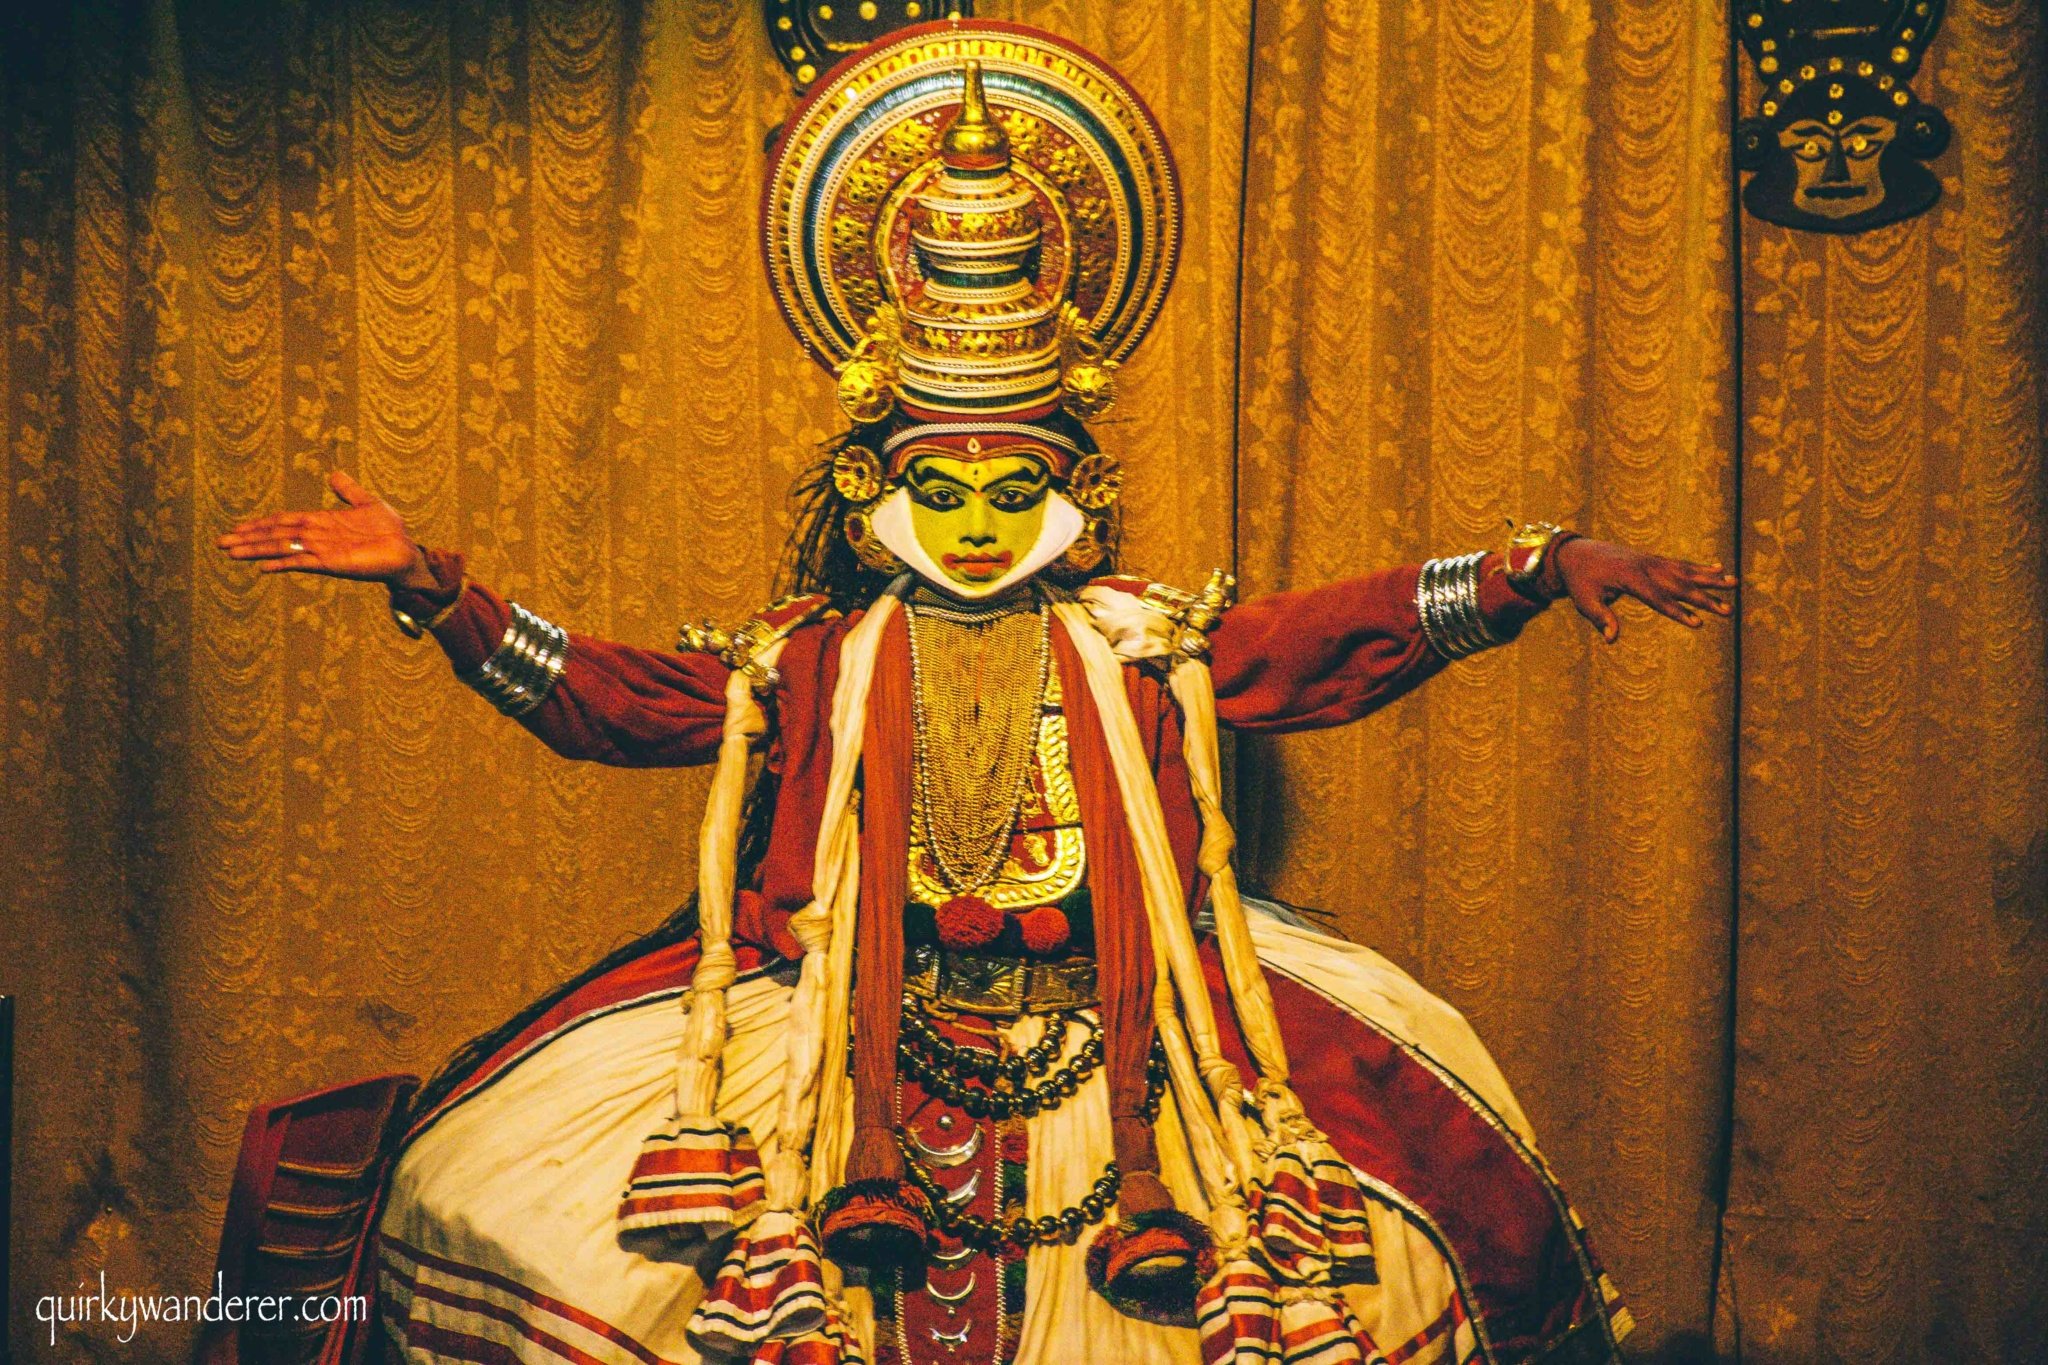 kathakali dance performance